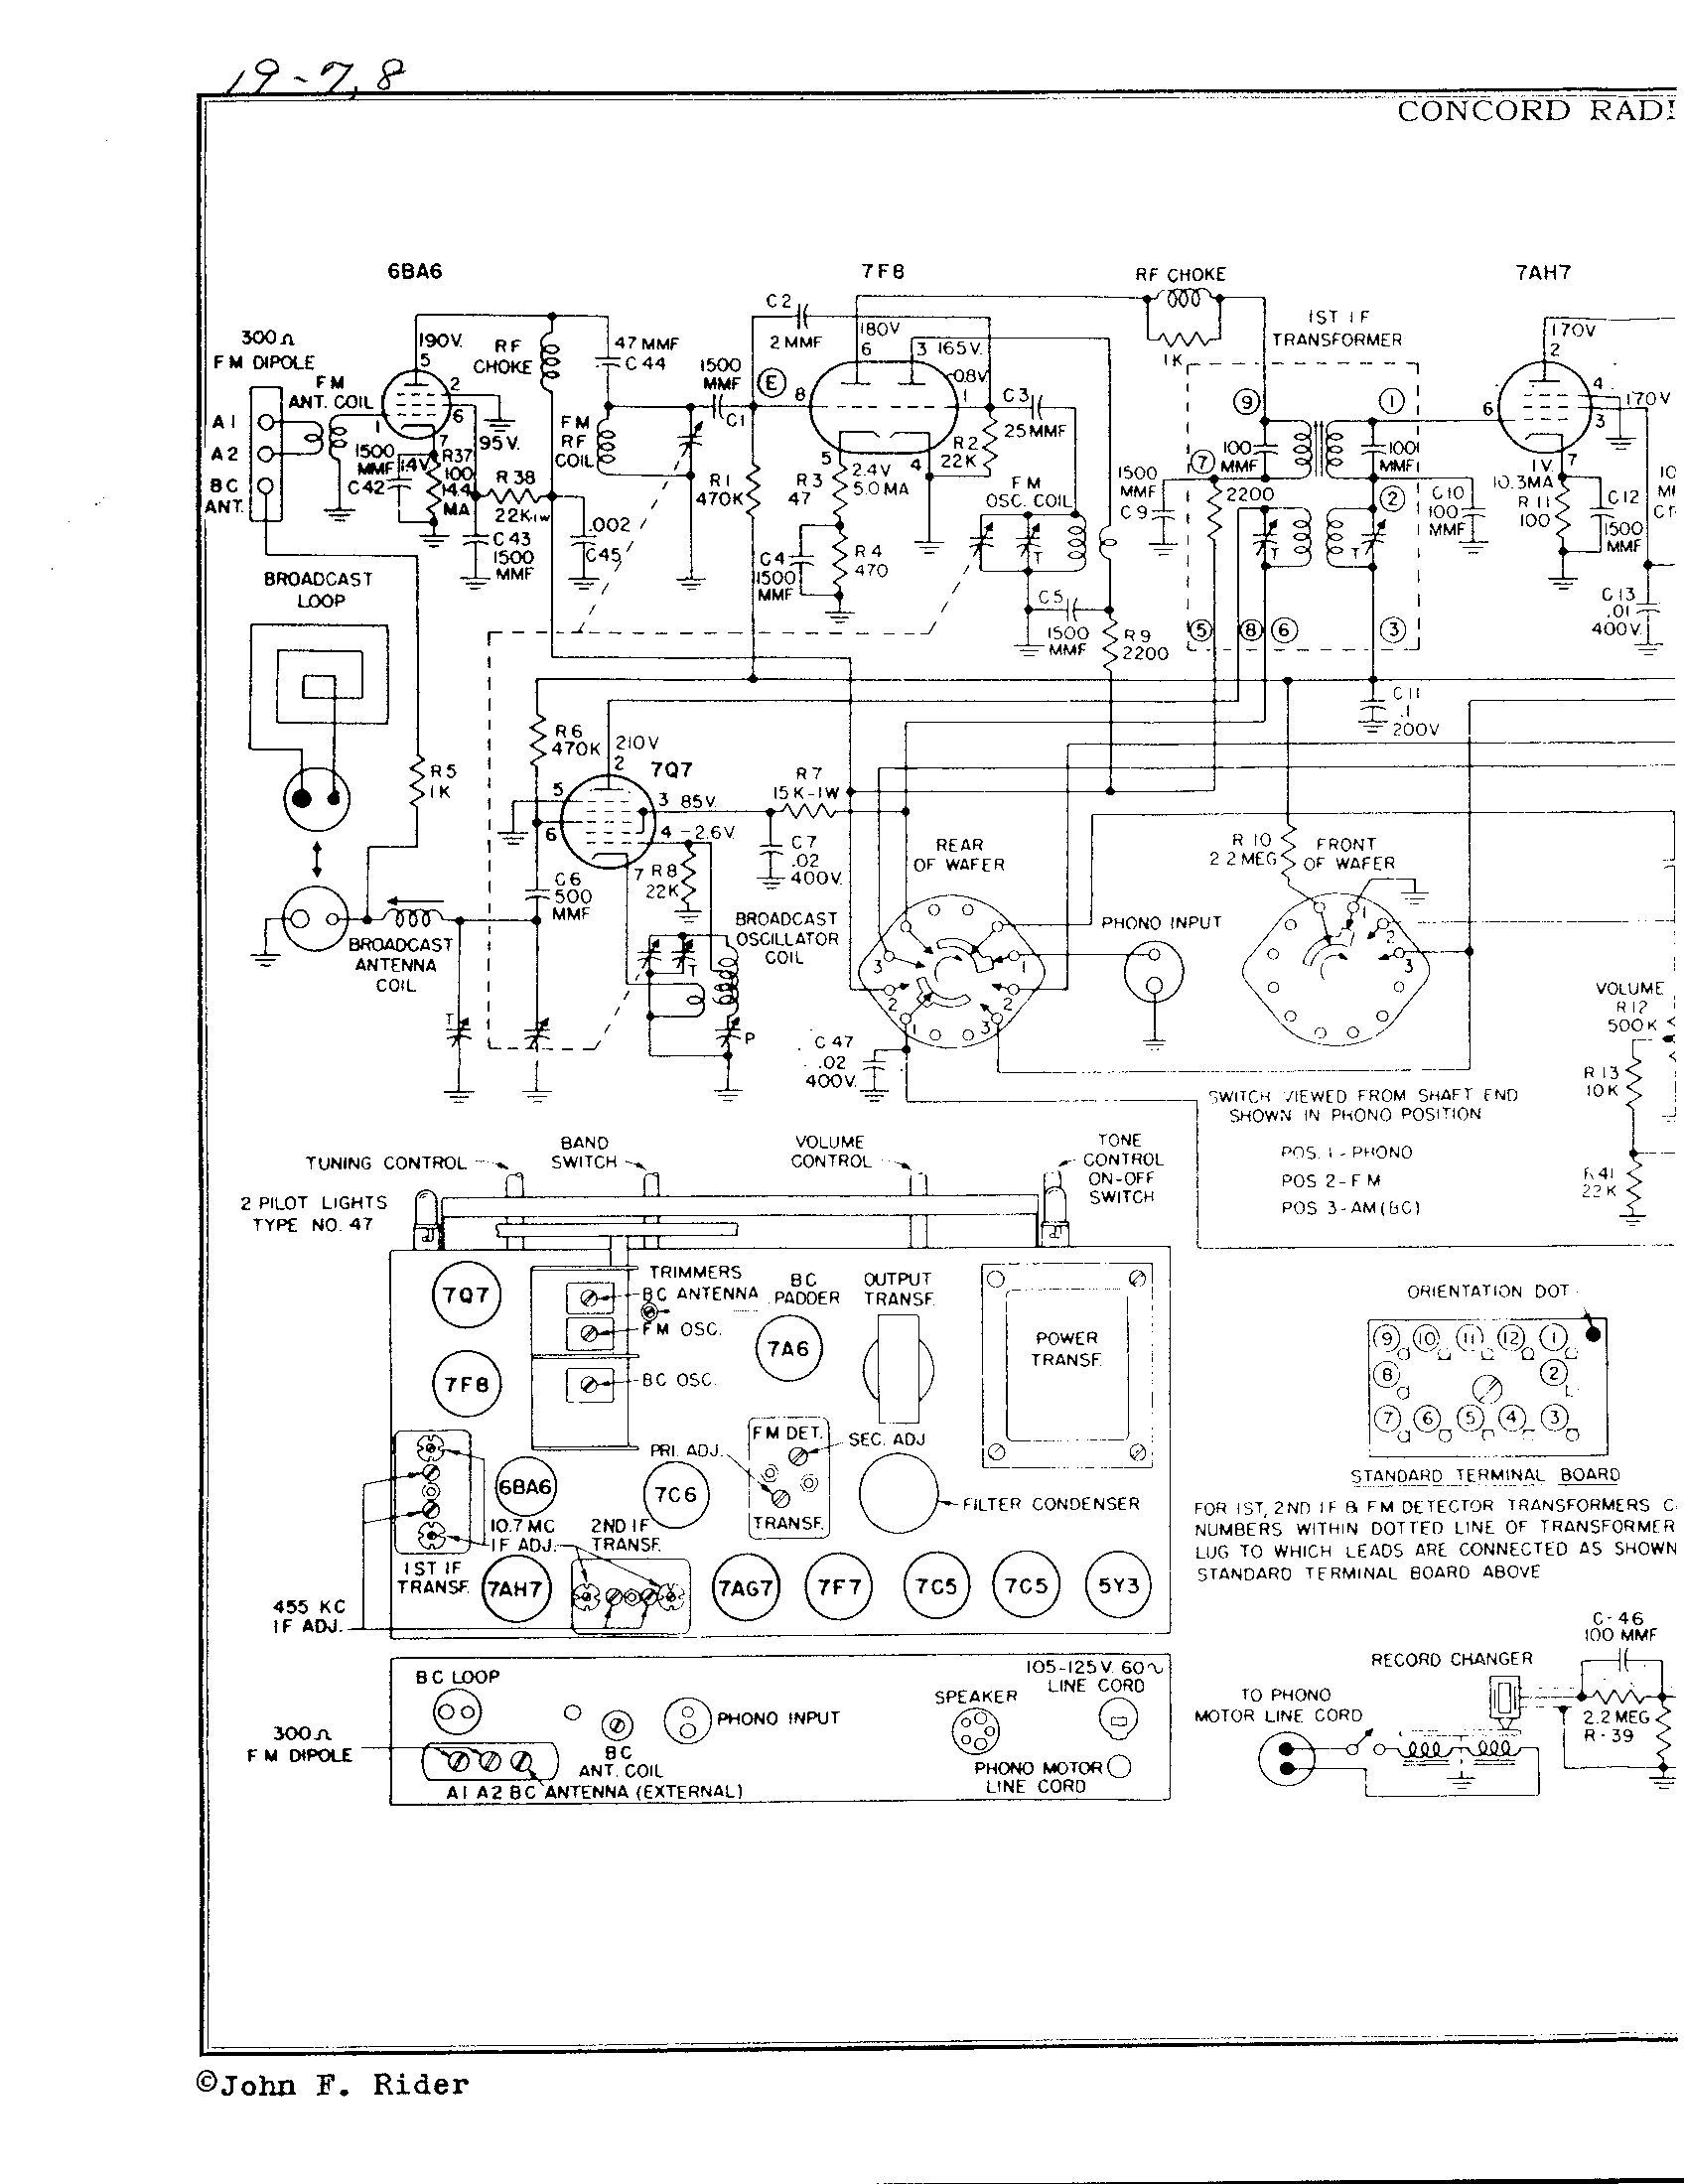 Miraculous Concord Rph10A36Da Wiring Diagram Wiring Diagrams Lol Wiring Cloud Hisonuggs Outletorg